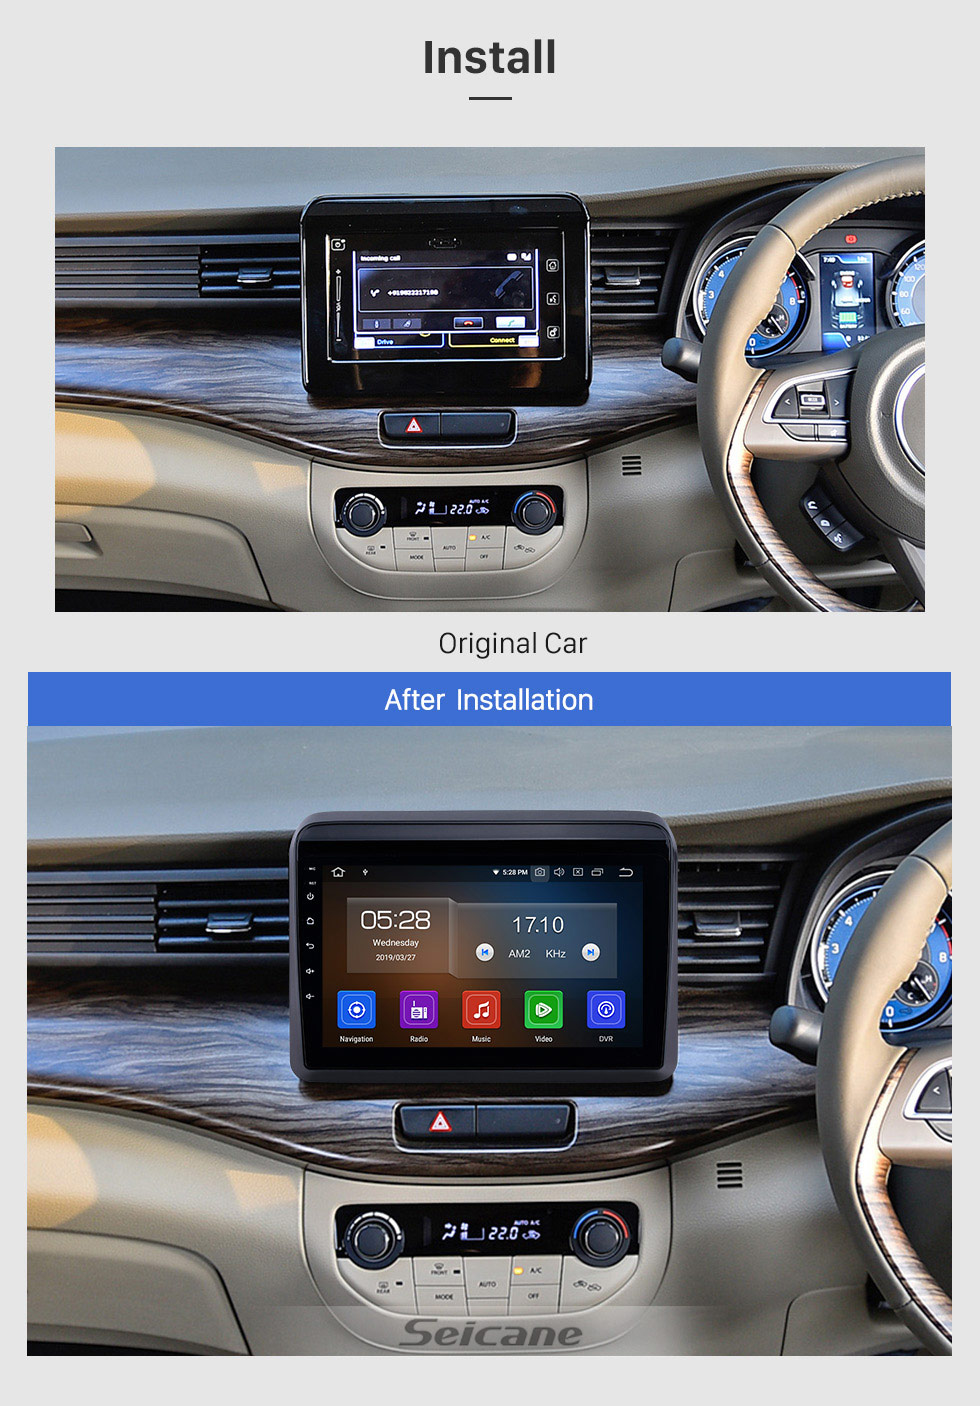 Seicane 2018 2019 Suzuki ERTIGA Android 9.0 HD Touchscreen 9 inch Multimedia Player Bluetooth GPS Navigation Radio with USB FM MP5 wifi music support DVR SCW DVD Player Carplay OBD2